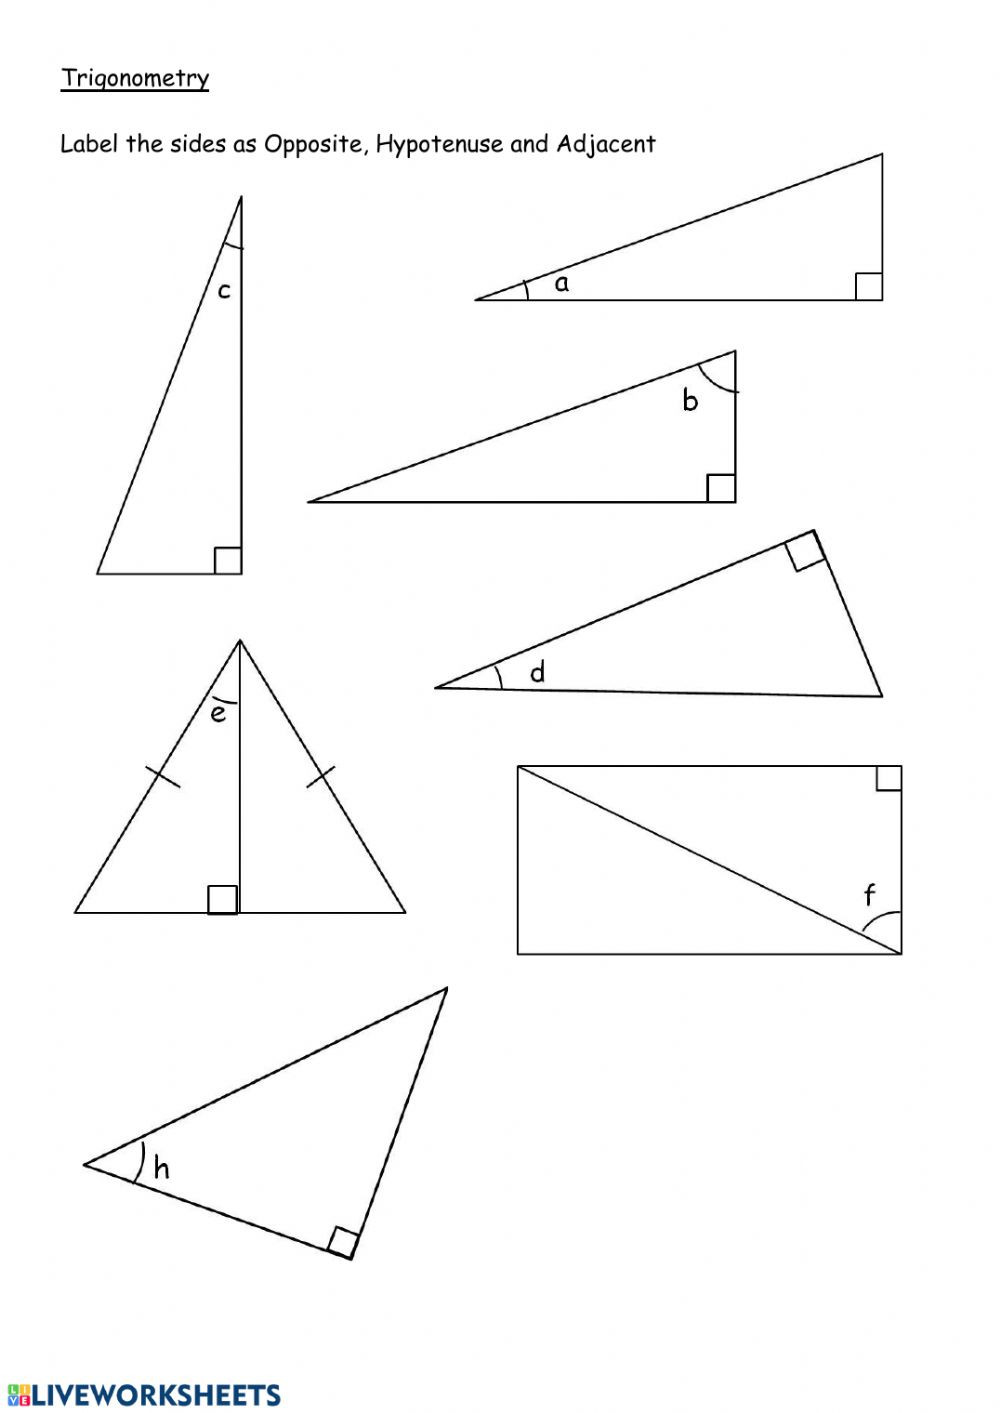 Right Triangle Trig Worksheet Label Sides In Right Angle Triangles Interactive Worksheet